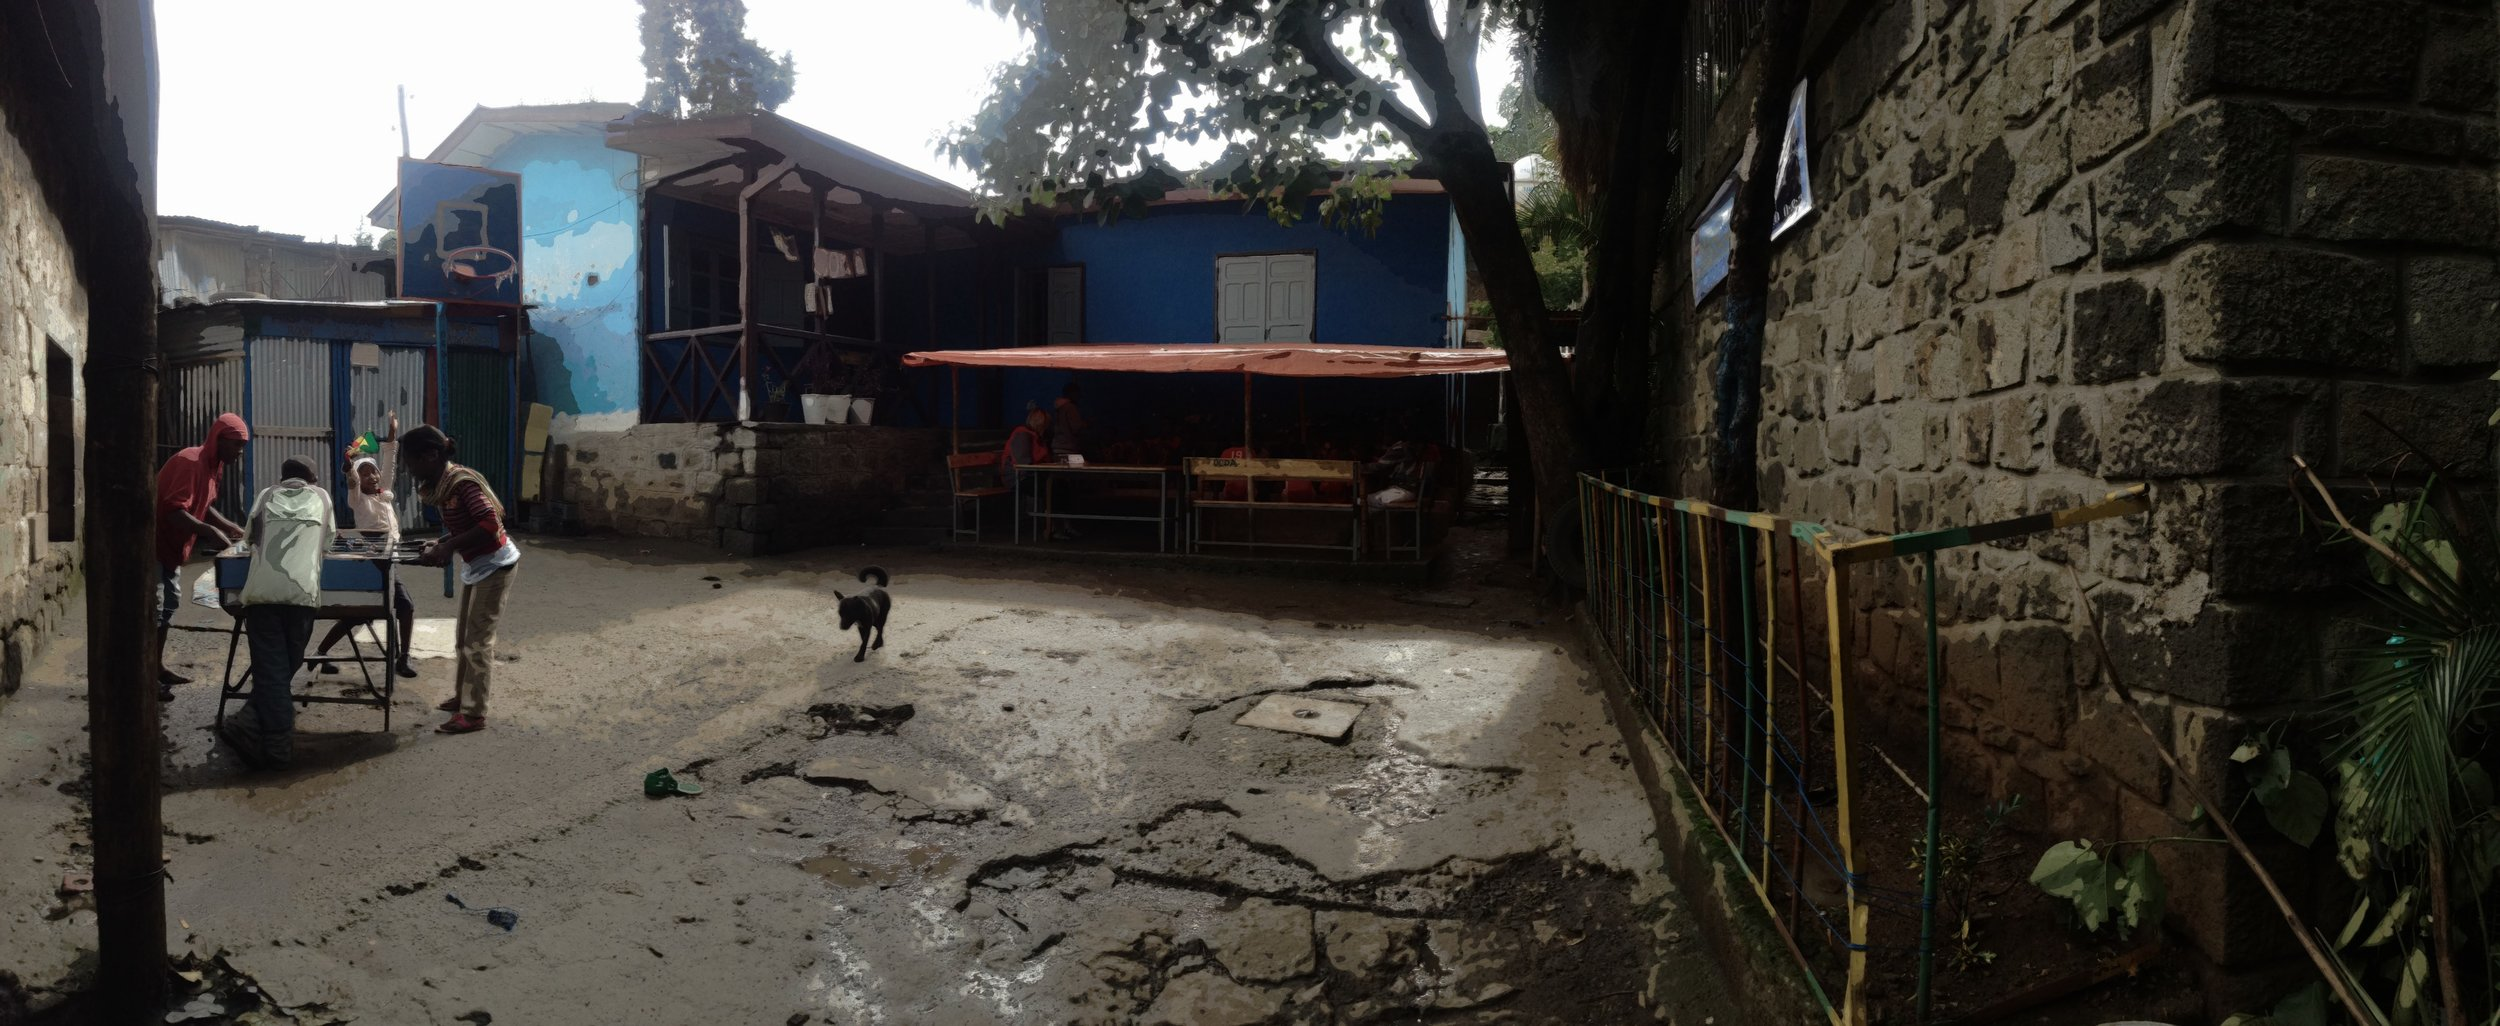 The front of Fekadu's drop-in center. A beacon of hope in the middle of Addis Ababa. This location has officially closed and the drop-in center is now at a temporary facility close by. Please join the Permanently His Campaign to ensure a permanent facility is in place in 2014.